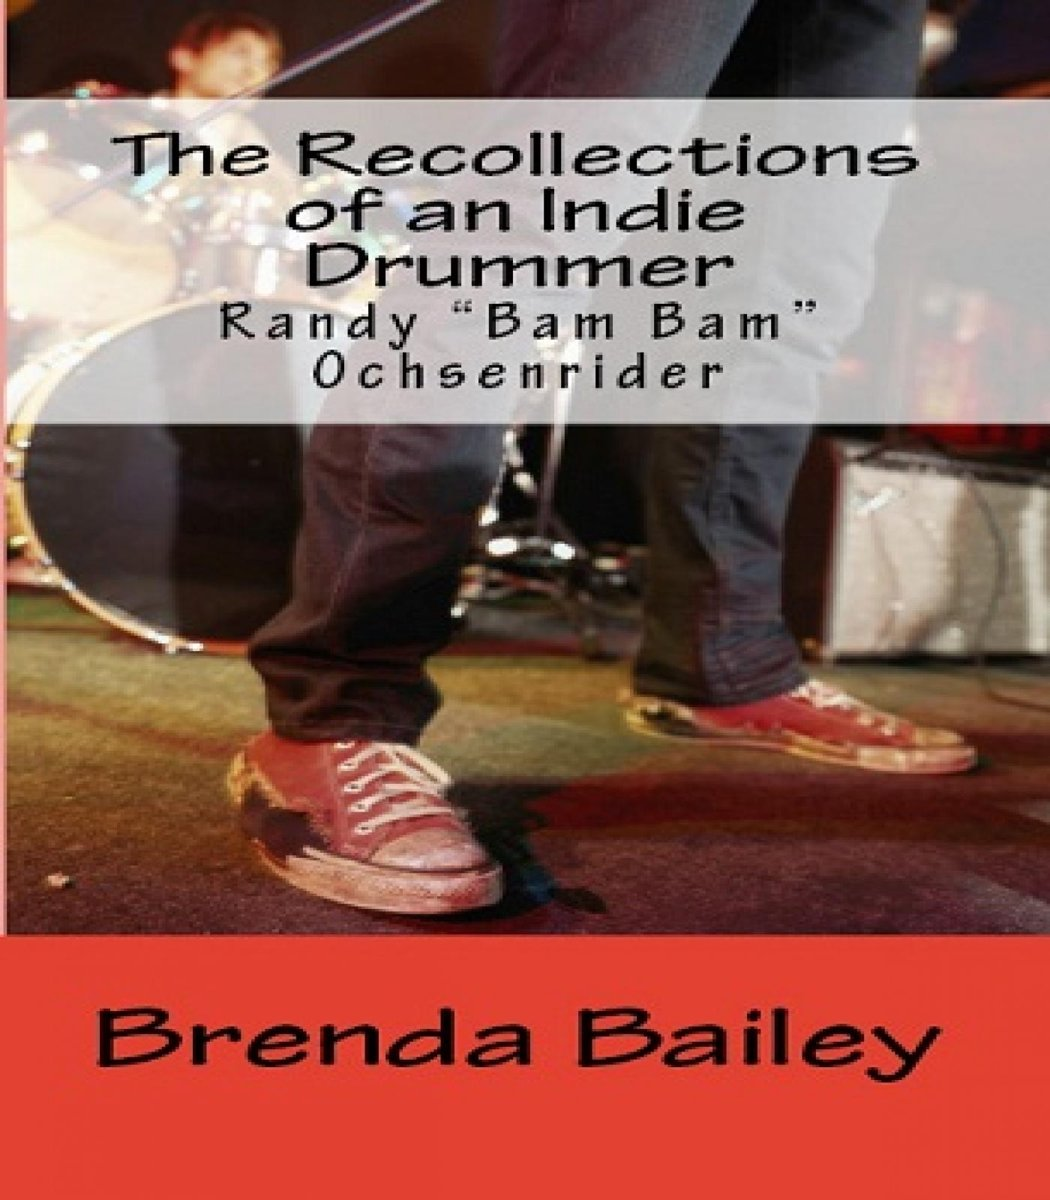 The Recollections of an Indie Drummer